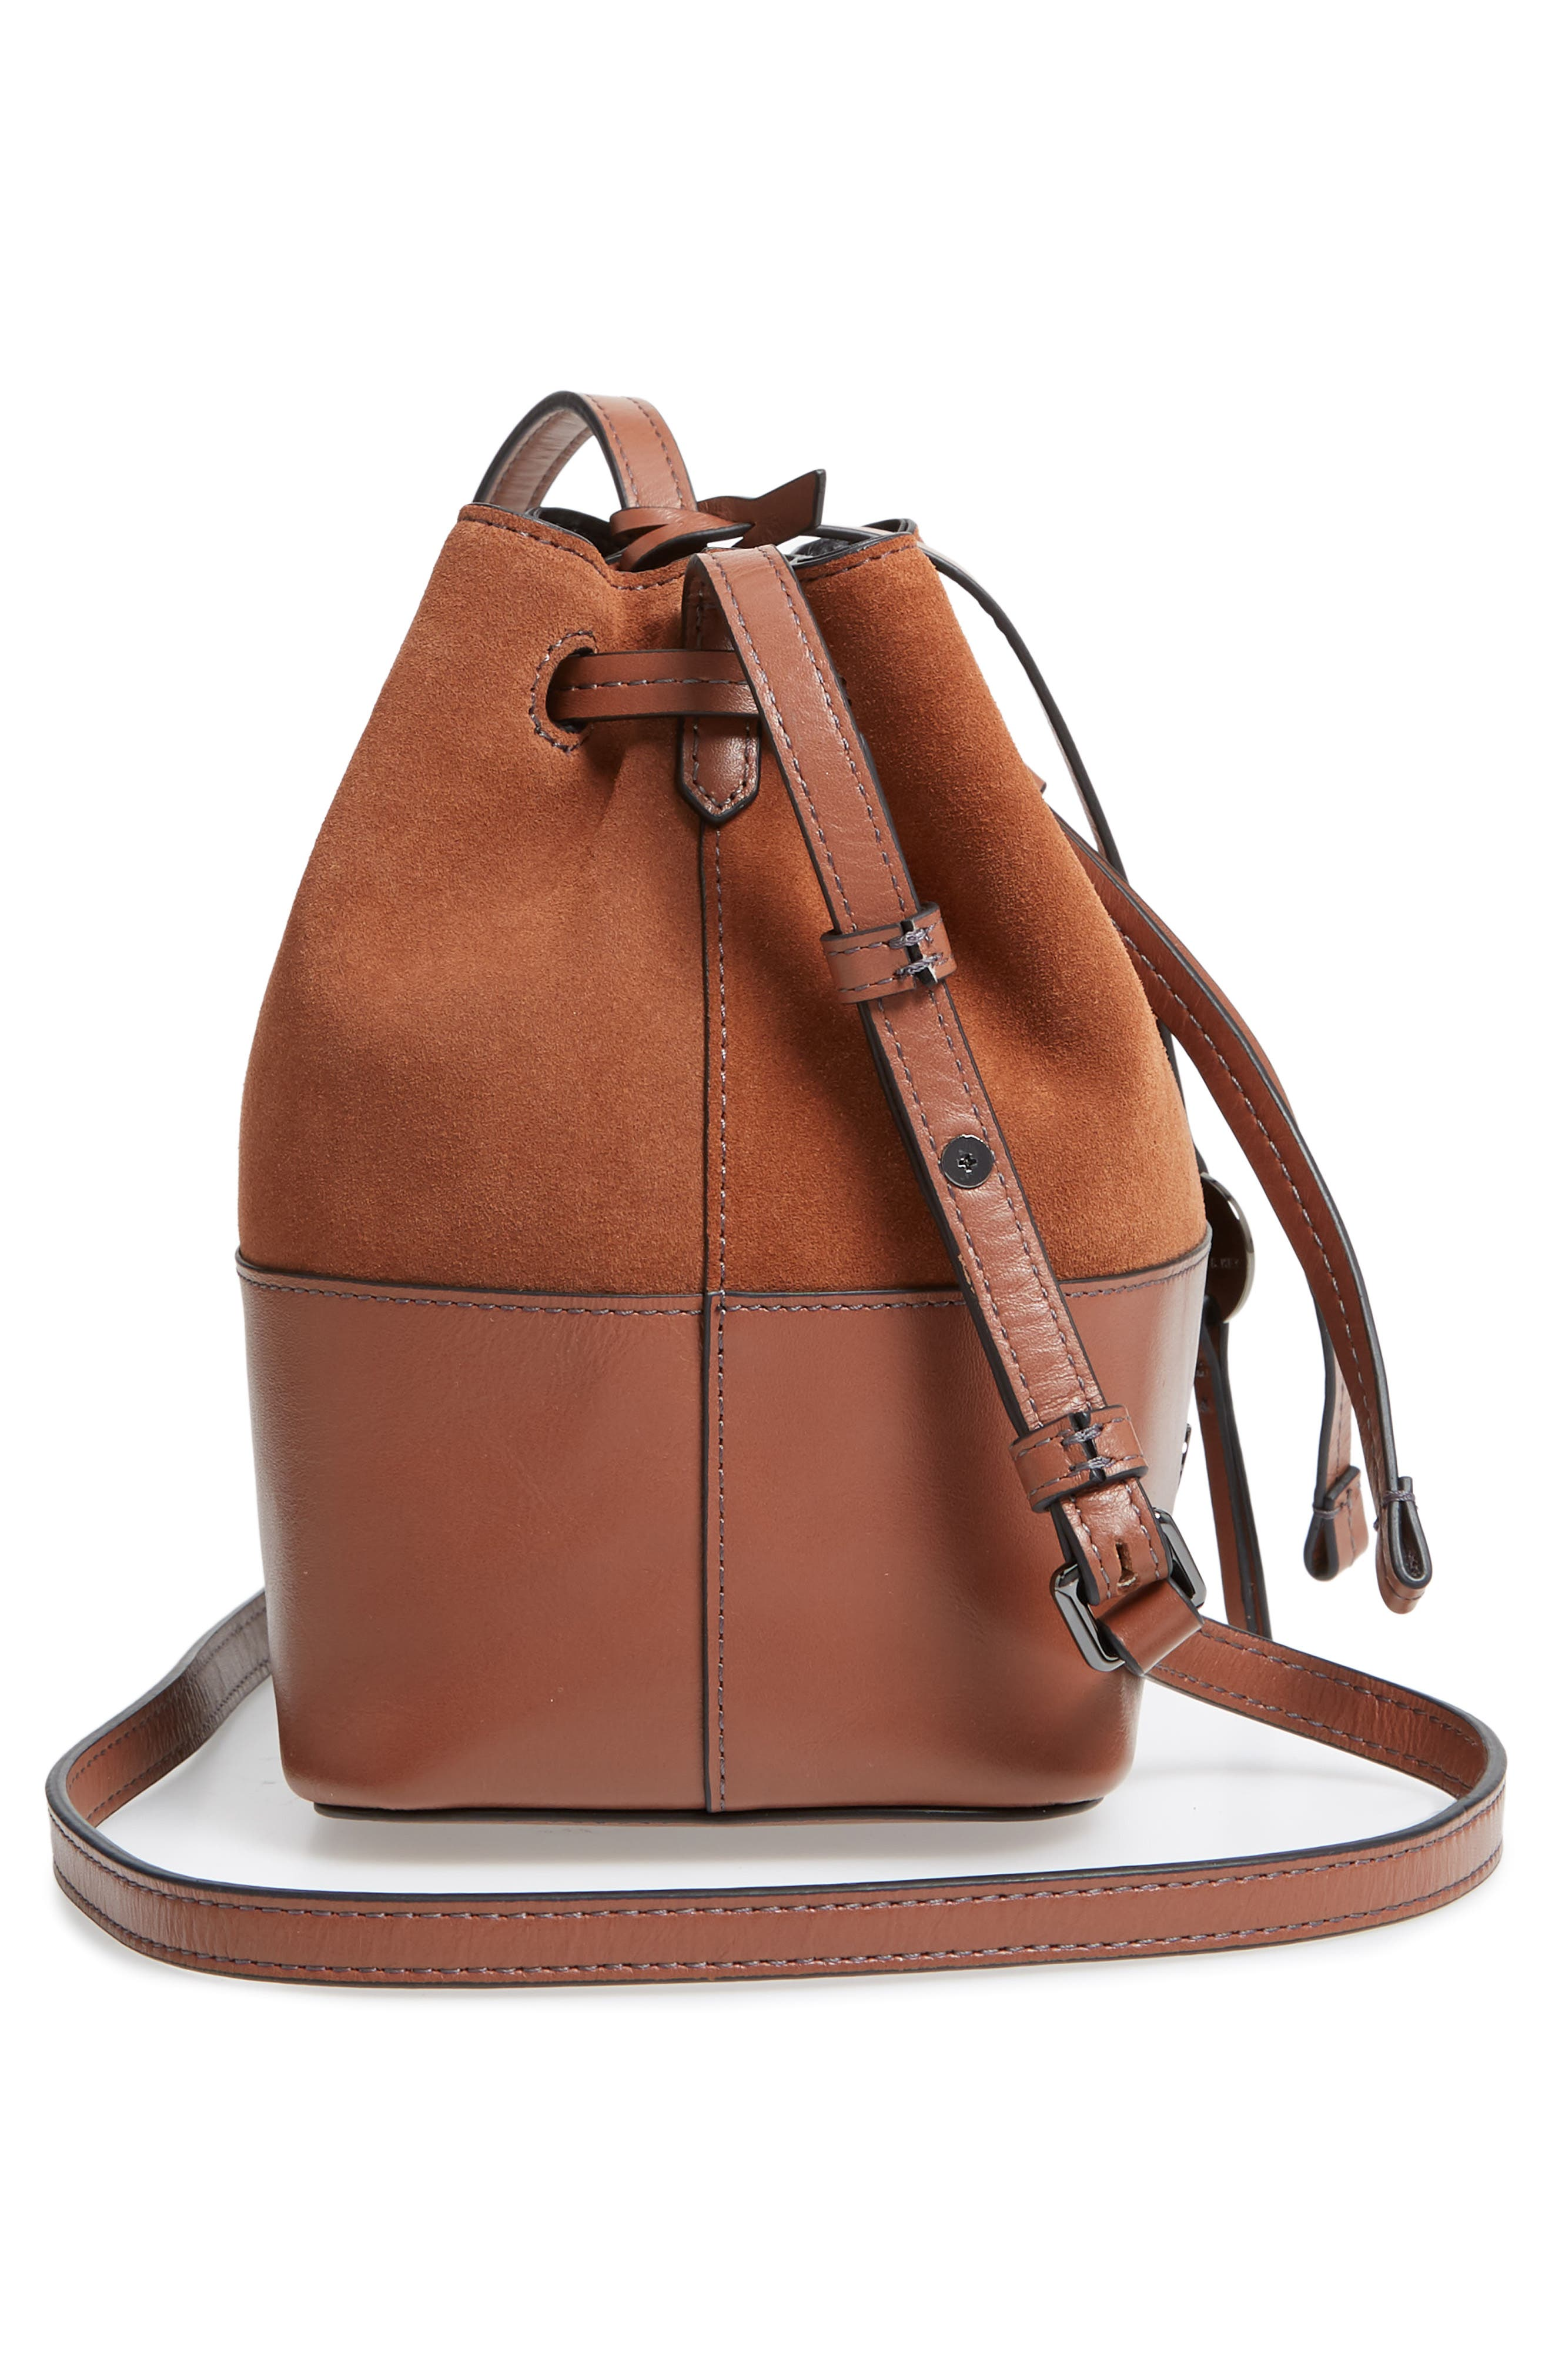 Small Blake RFID Leather Bucket Bag,                             Alternate thumbnail 5, color,                             202